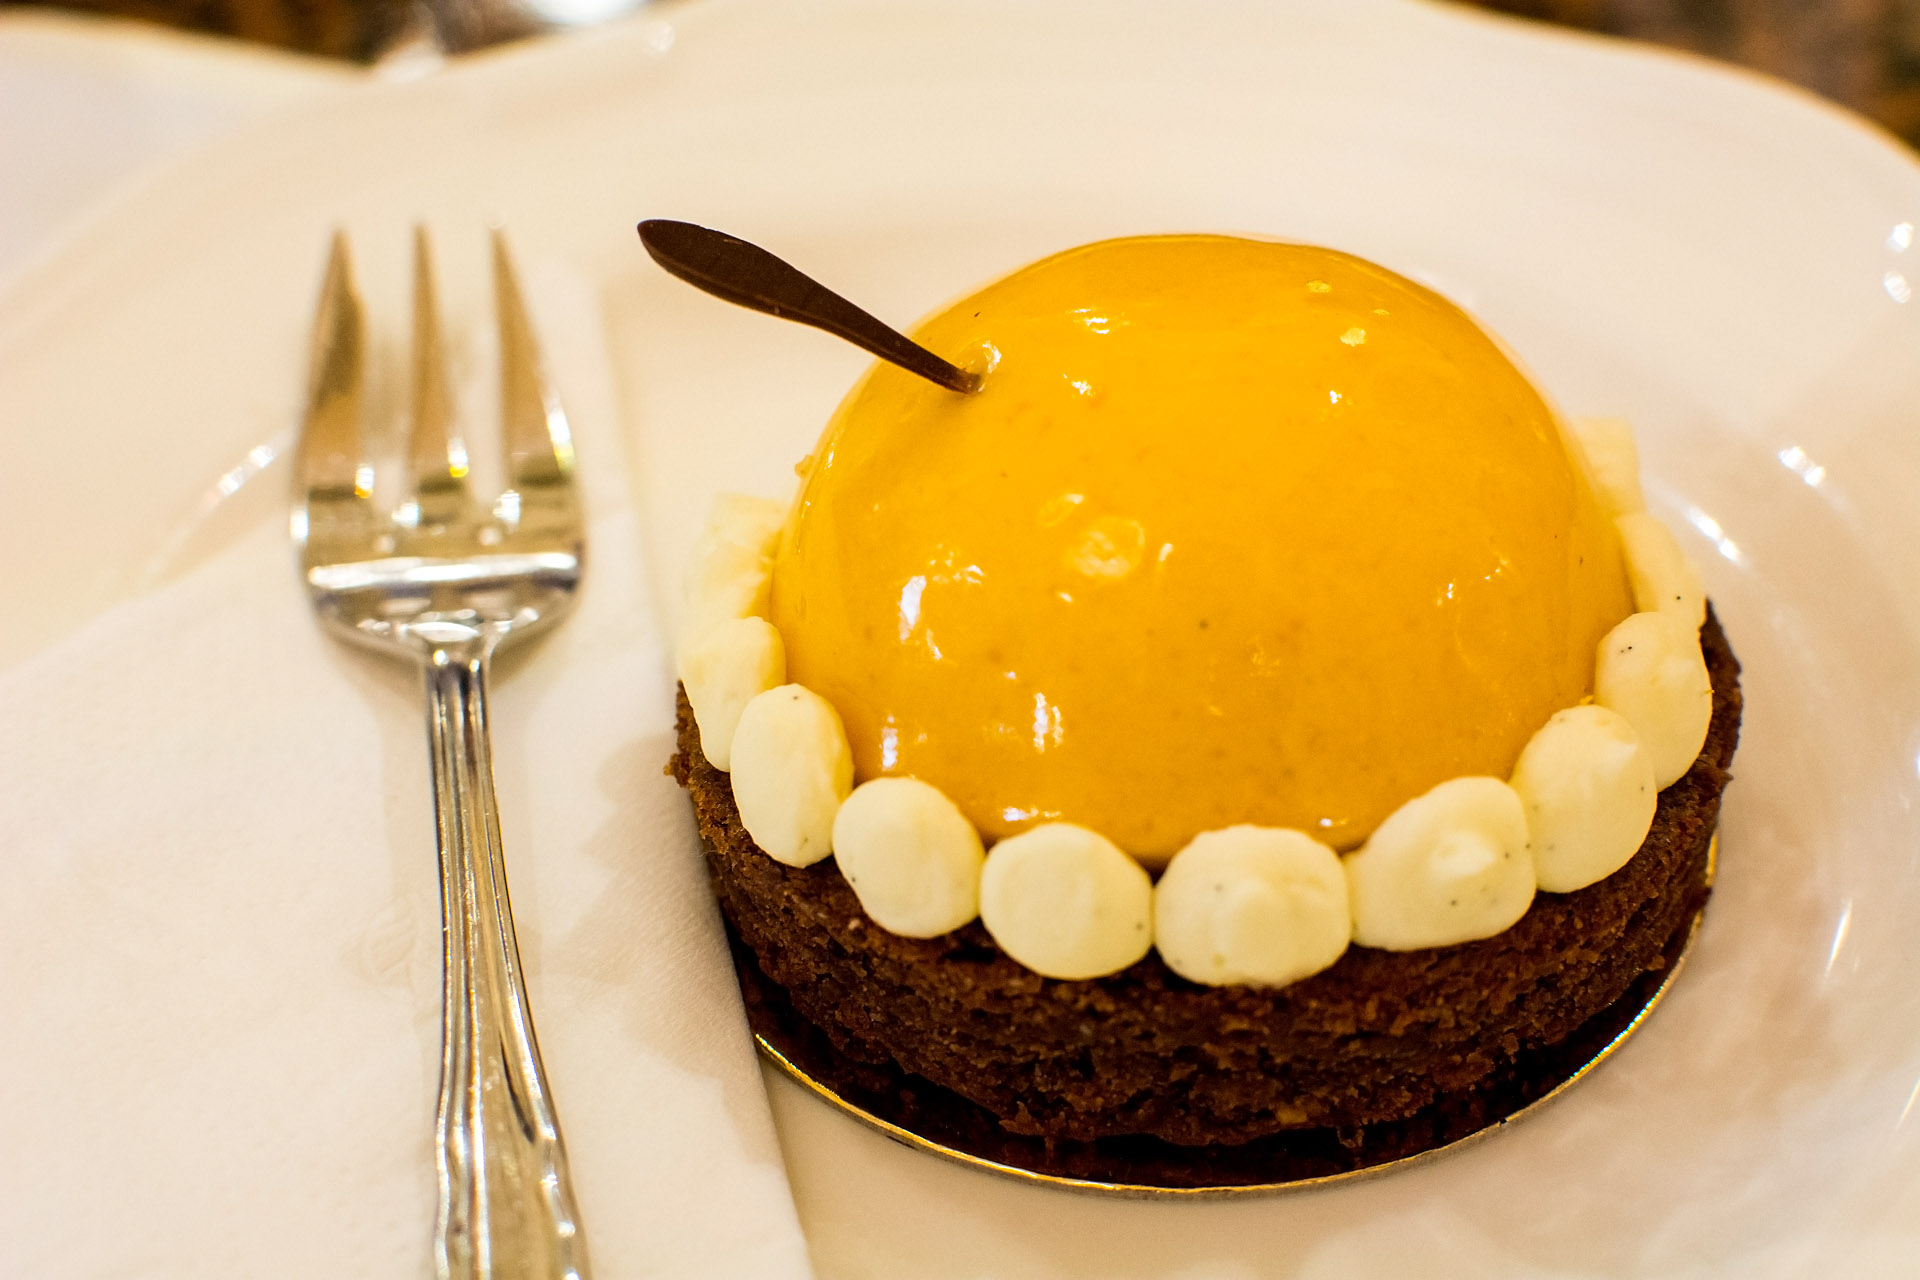 Sisi's Marille (apricot mousse & chocolate brownie)